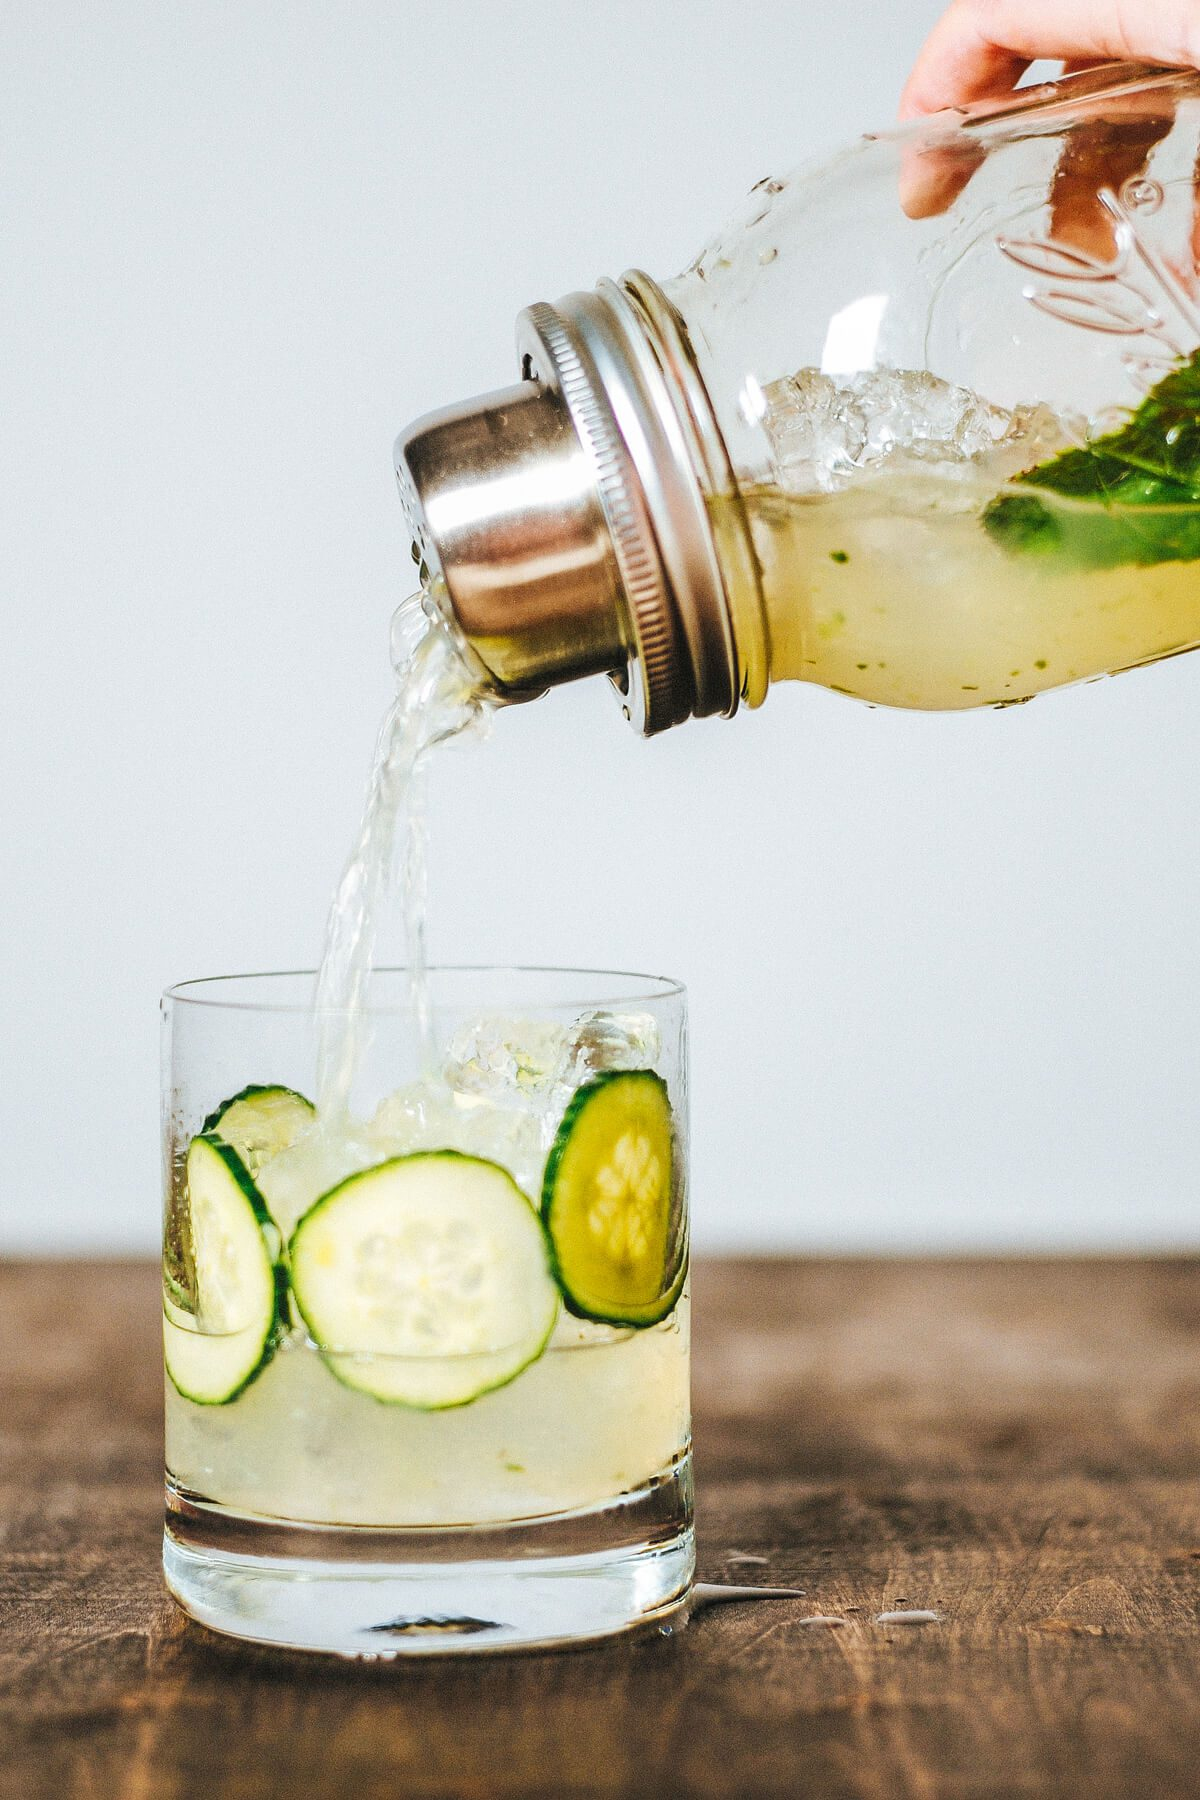 line the glass with cucumbers and fill with ice for a beautiful cocktail presentation of the cucumber ricky